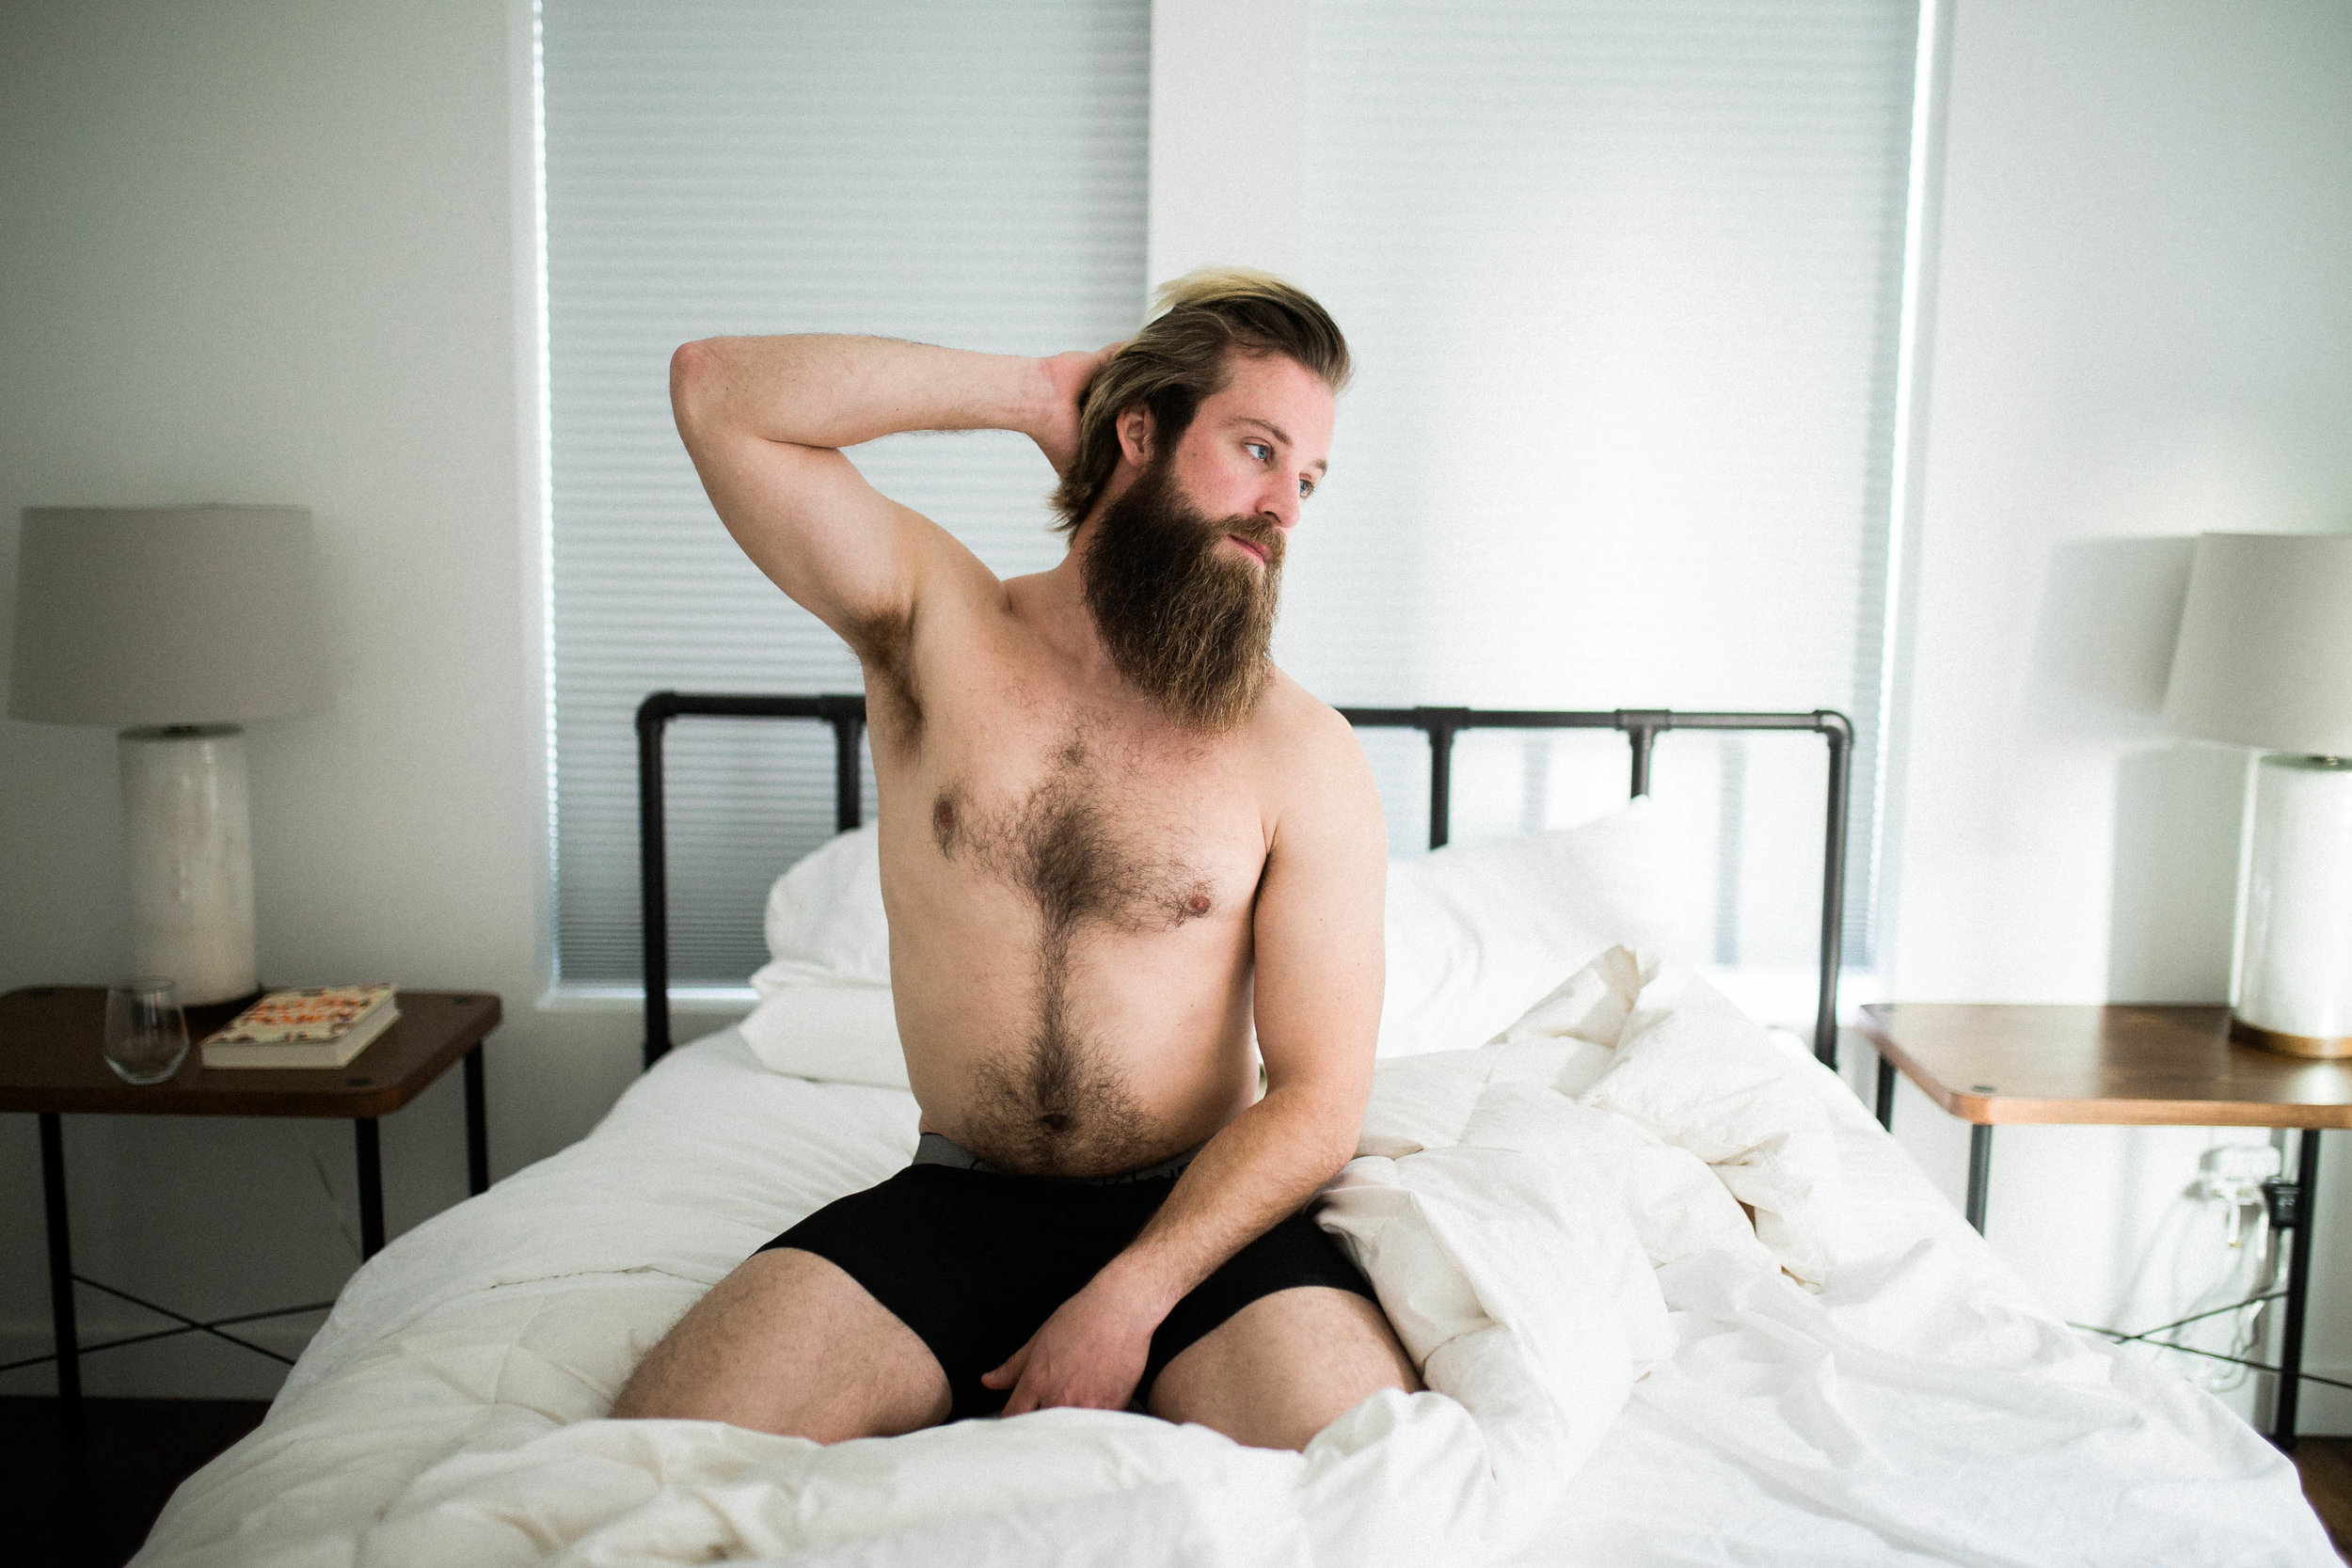 oklahoma boudoir photographer, okc boudoir photography, male boudoir, dudoir, sexy male photos, bathtub photos, bearded guy in bathtub, beard, hairy boy, cigarettes in bathtub, sexy